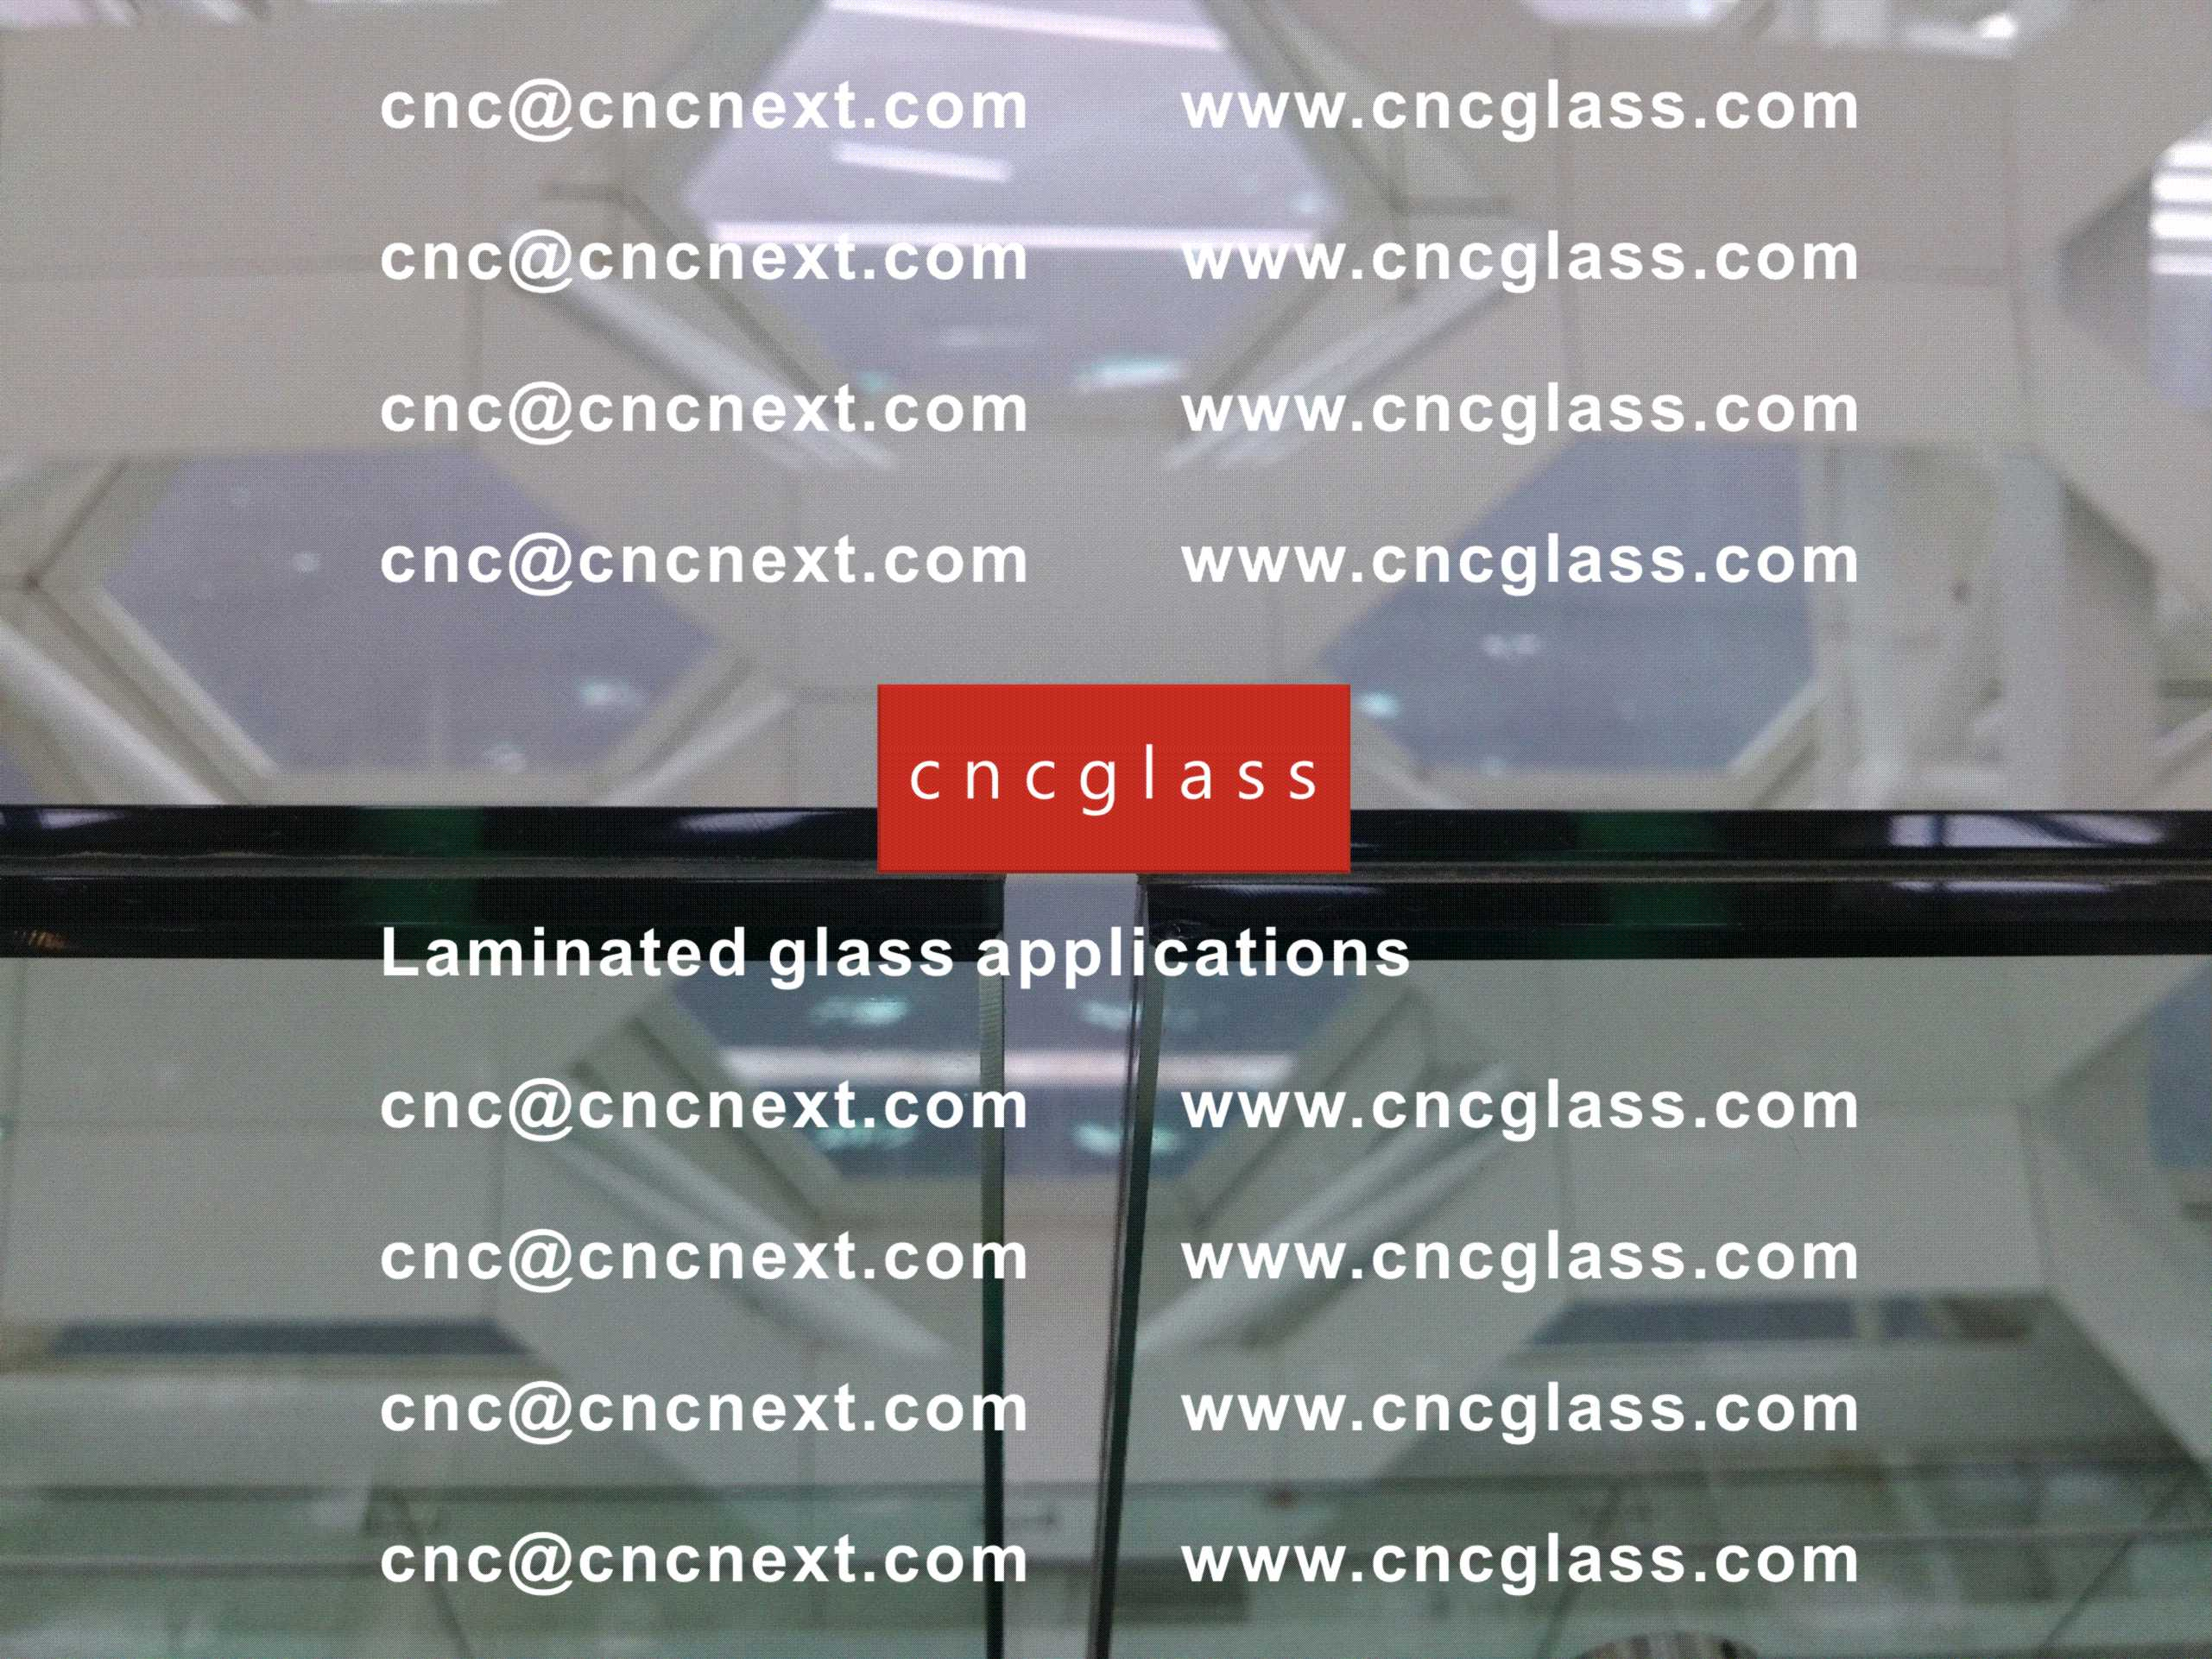 007 EVAFORCE LAMINATED GLASS